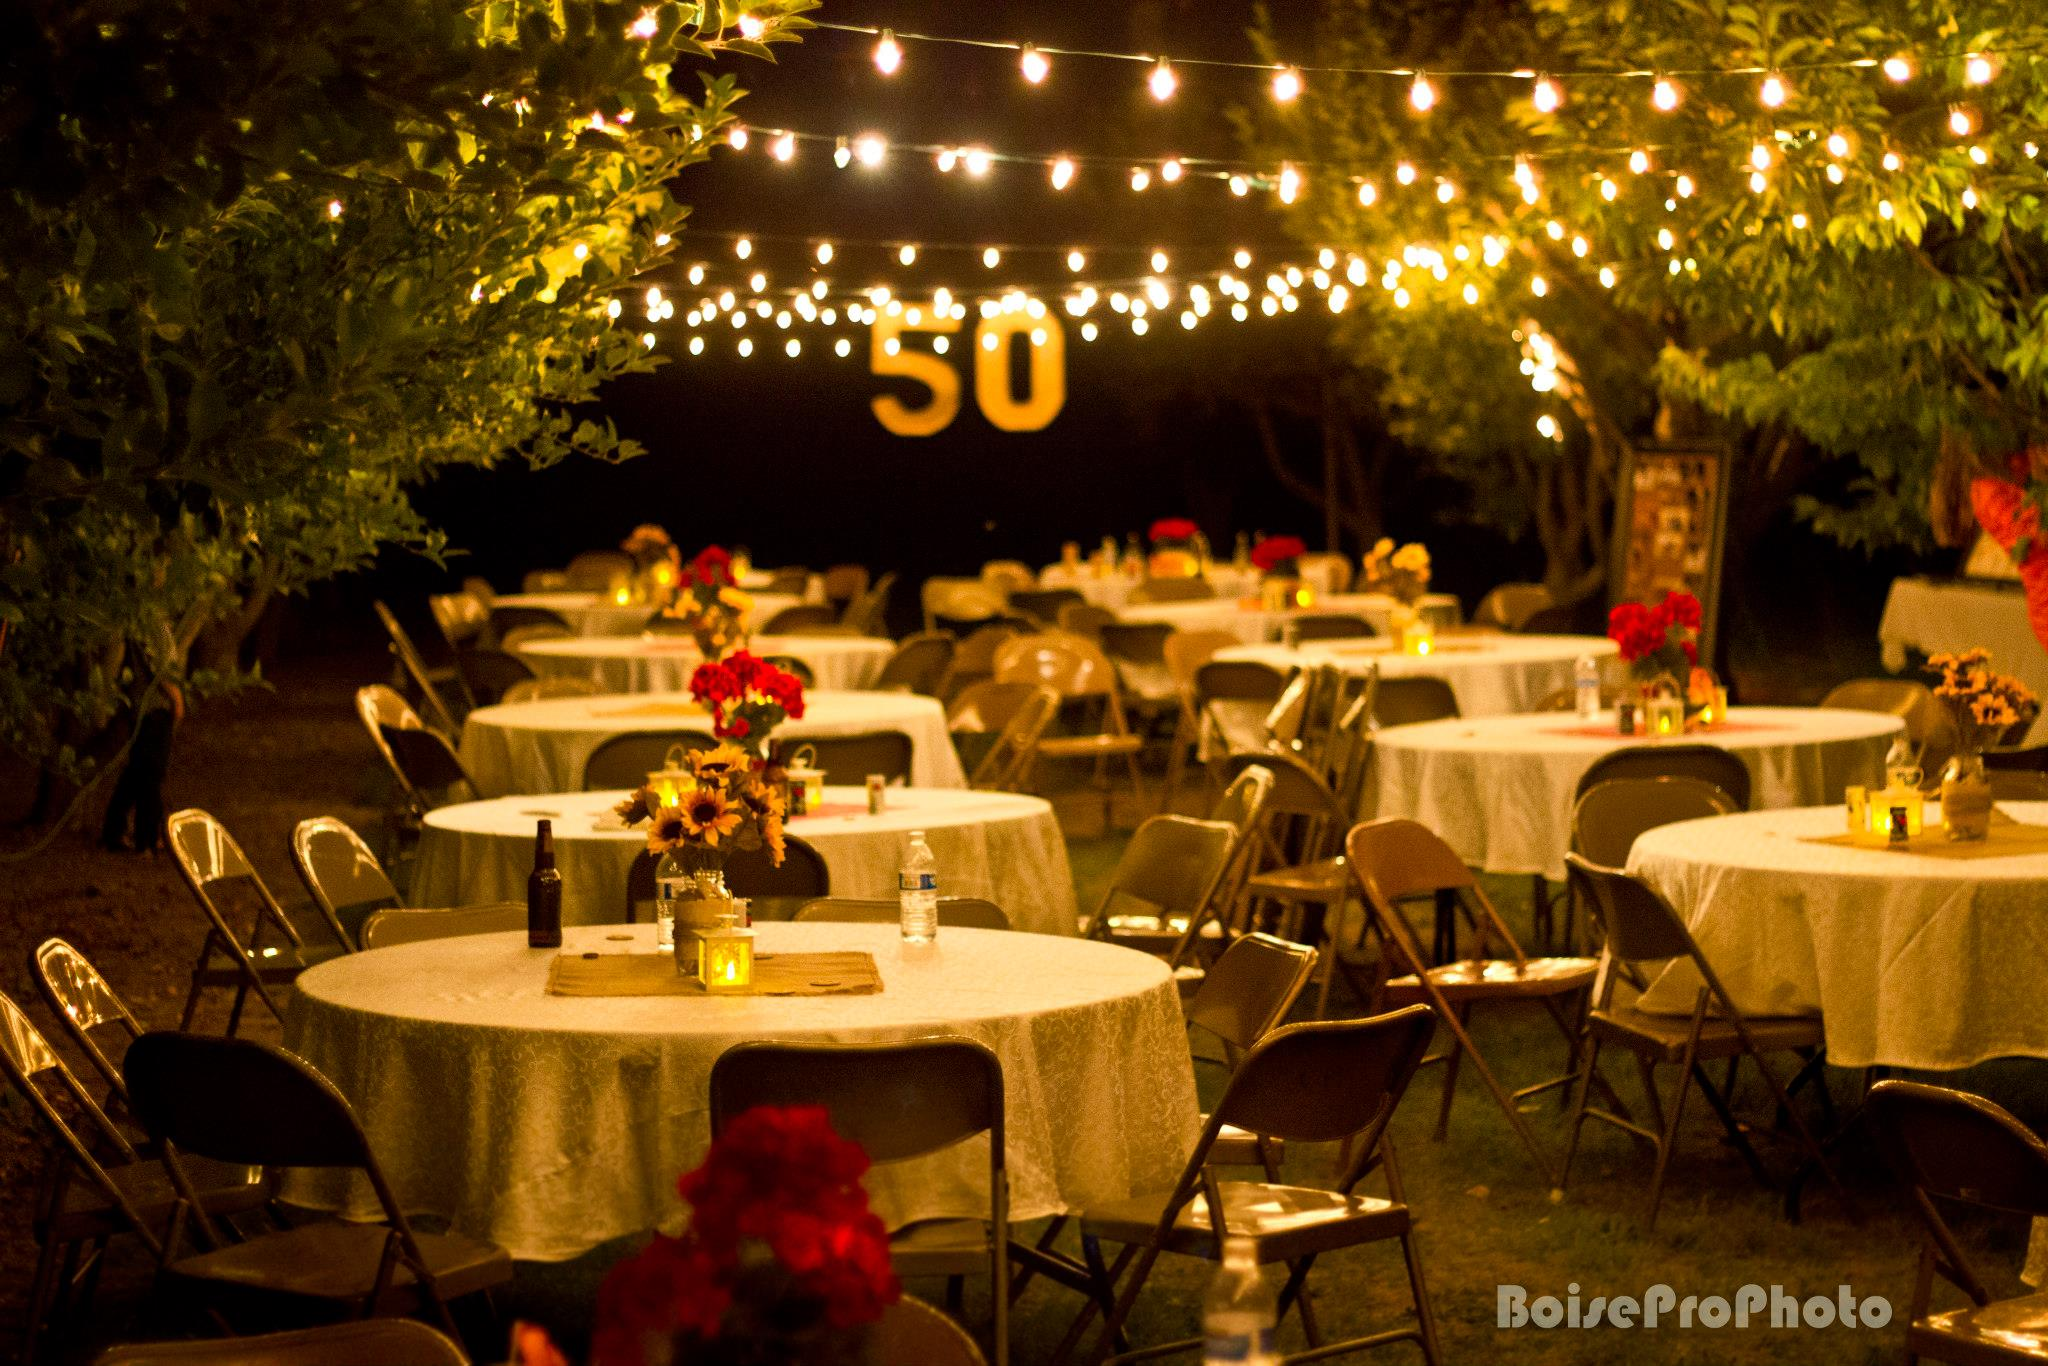 Diy 50th wedding anniversary party from salty bison for 50th birthday decoration ideas